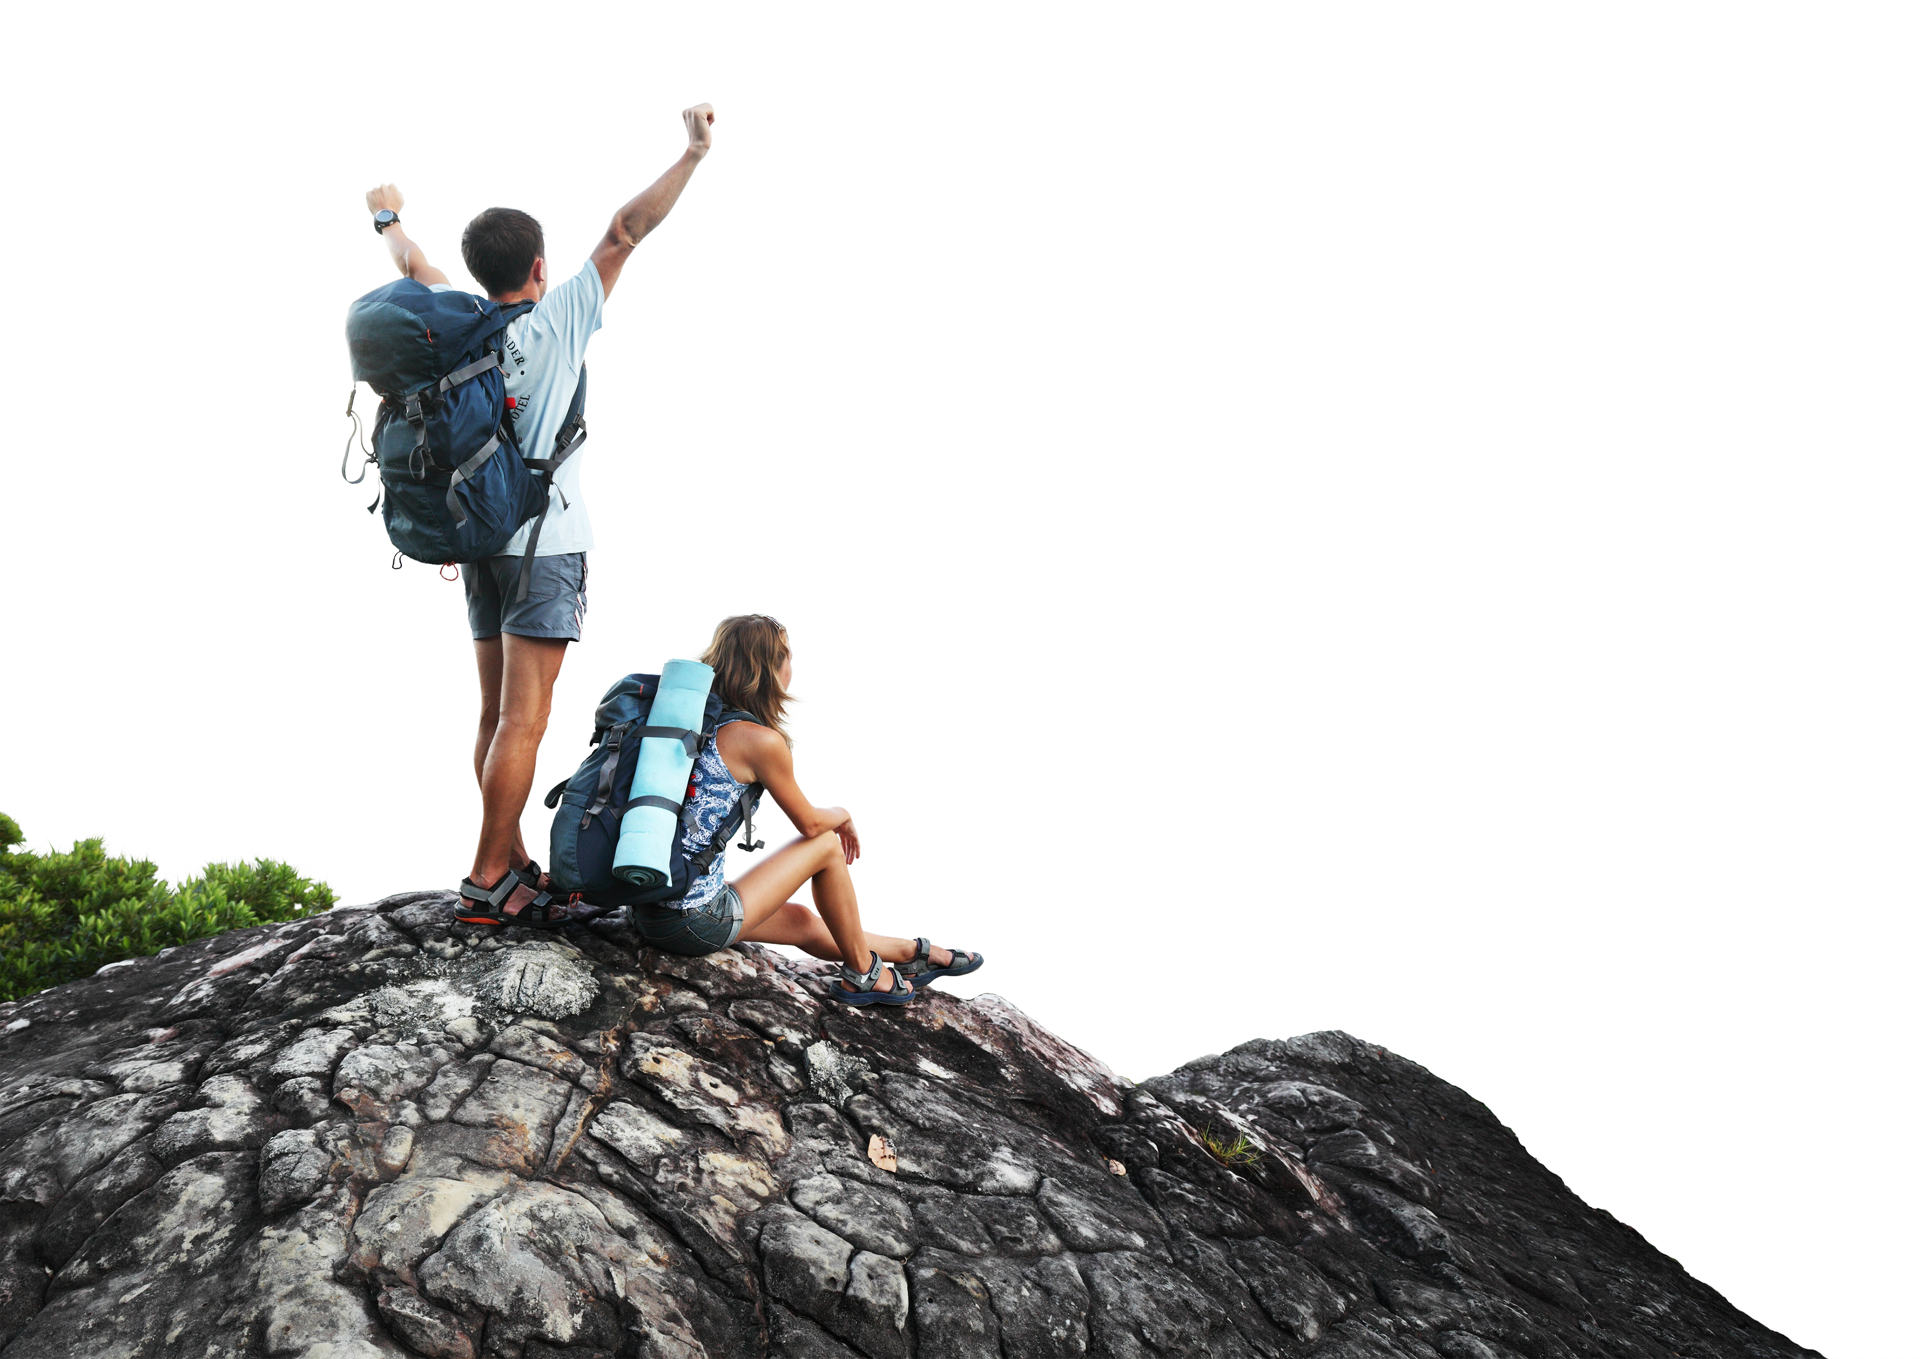 Two hikers with backpacks on top of a mountain isolated on a white background